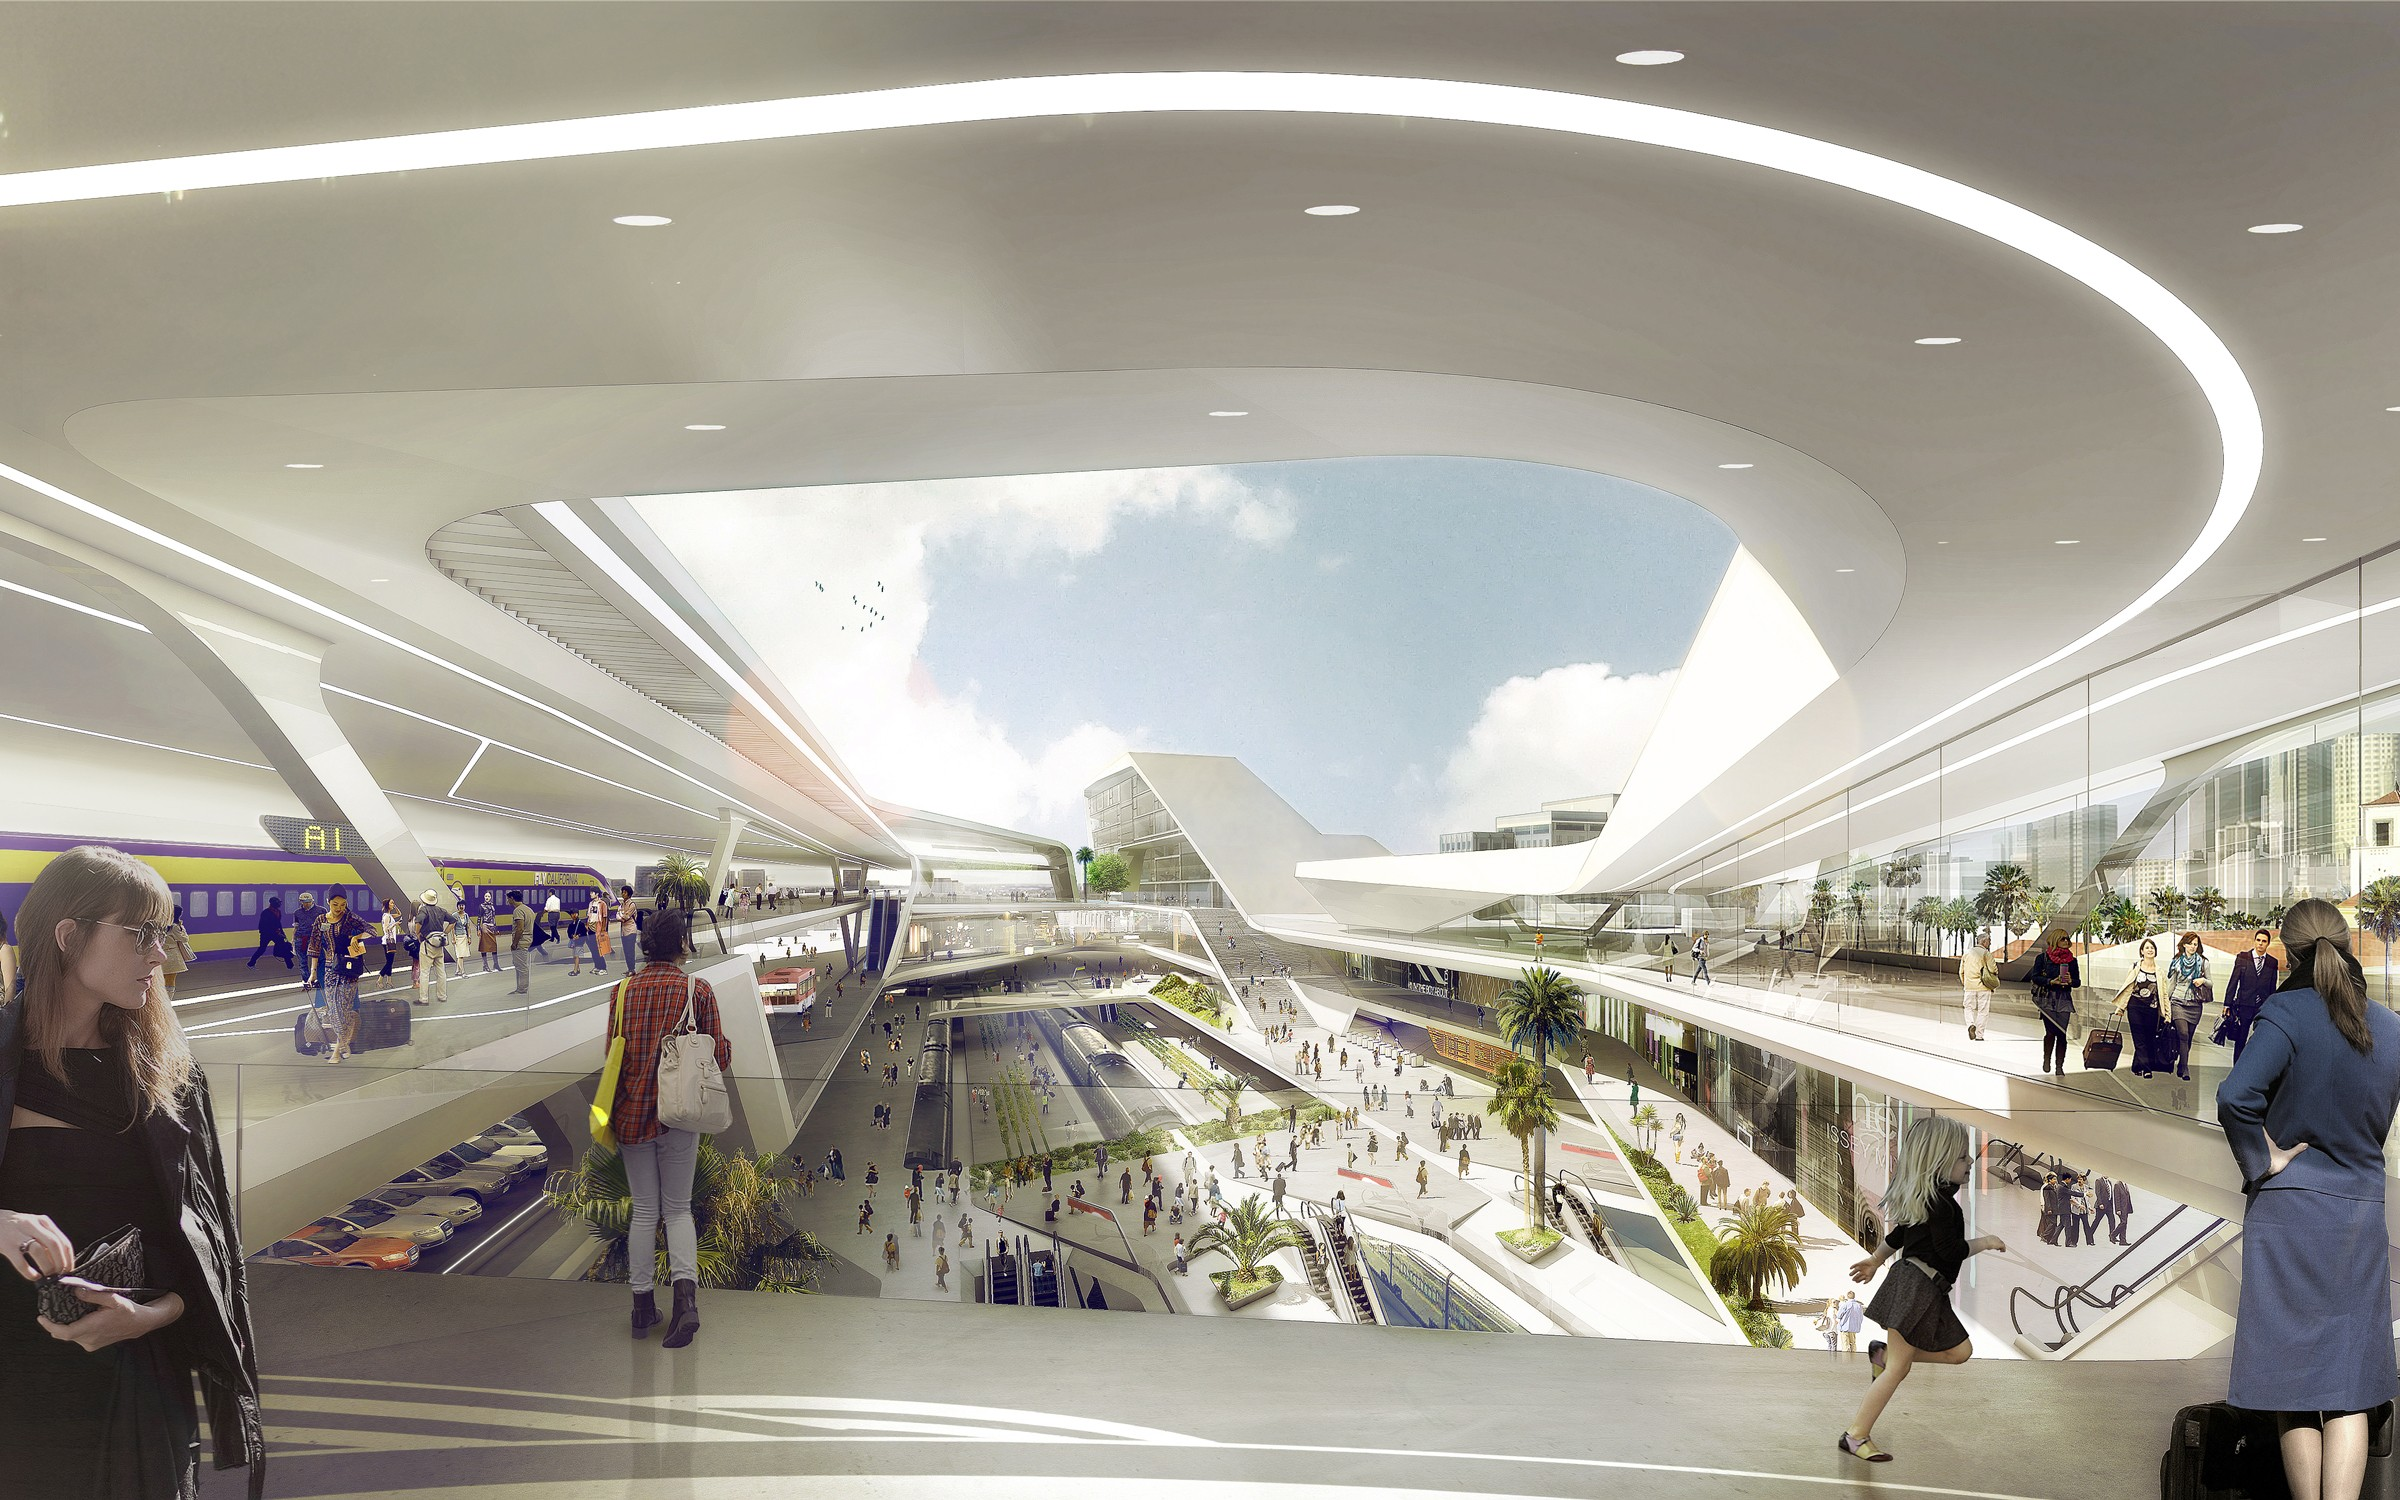 Archdata Vision For Master Plan Union Station 2050